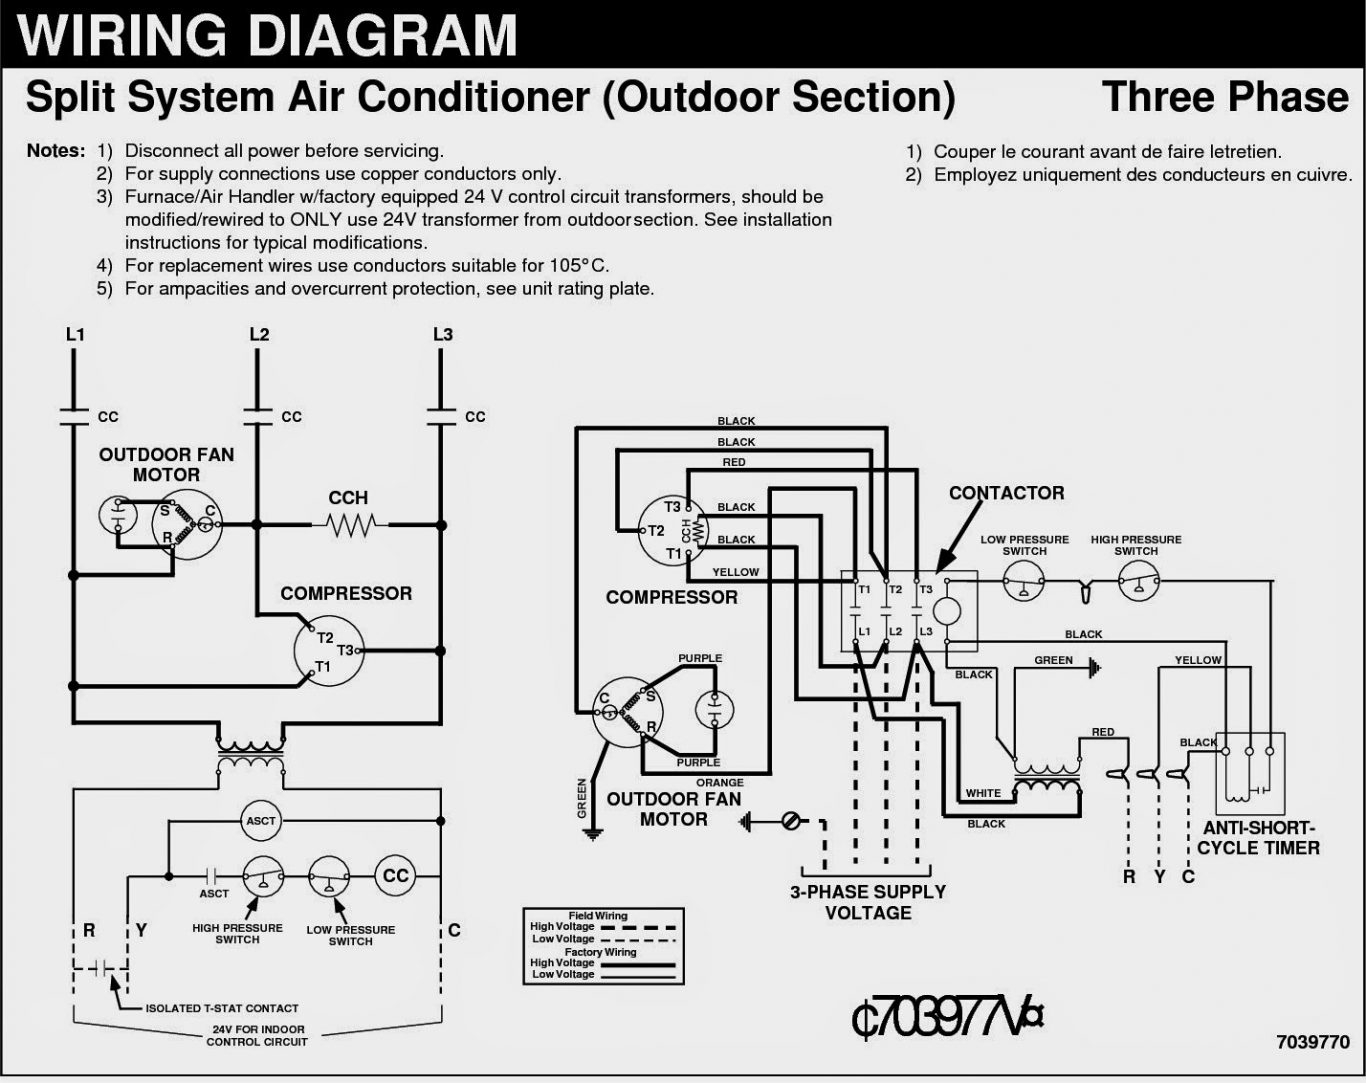 blue star air conditioner wiring diagram vita spa l200 wiring diagram gallery panasonic inverter air conditioner wiring diagram